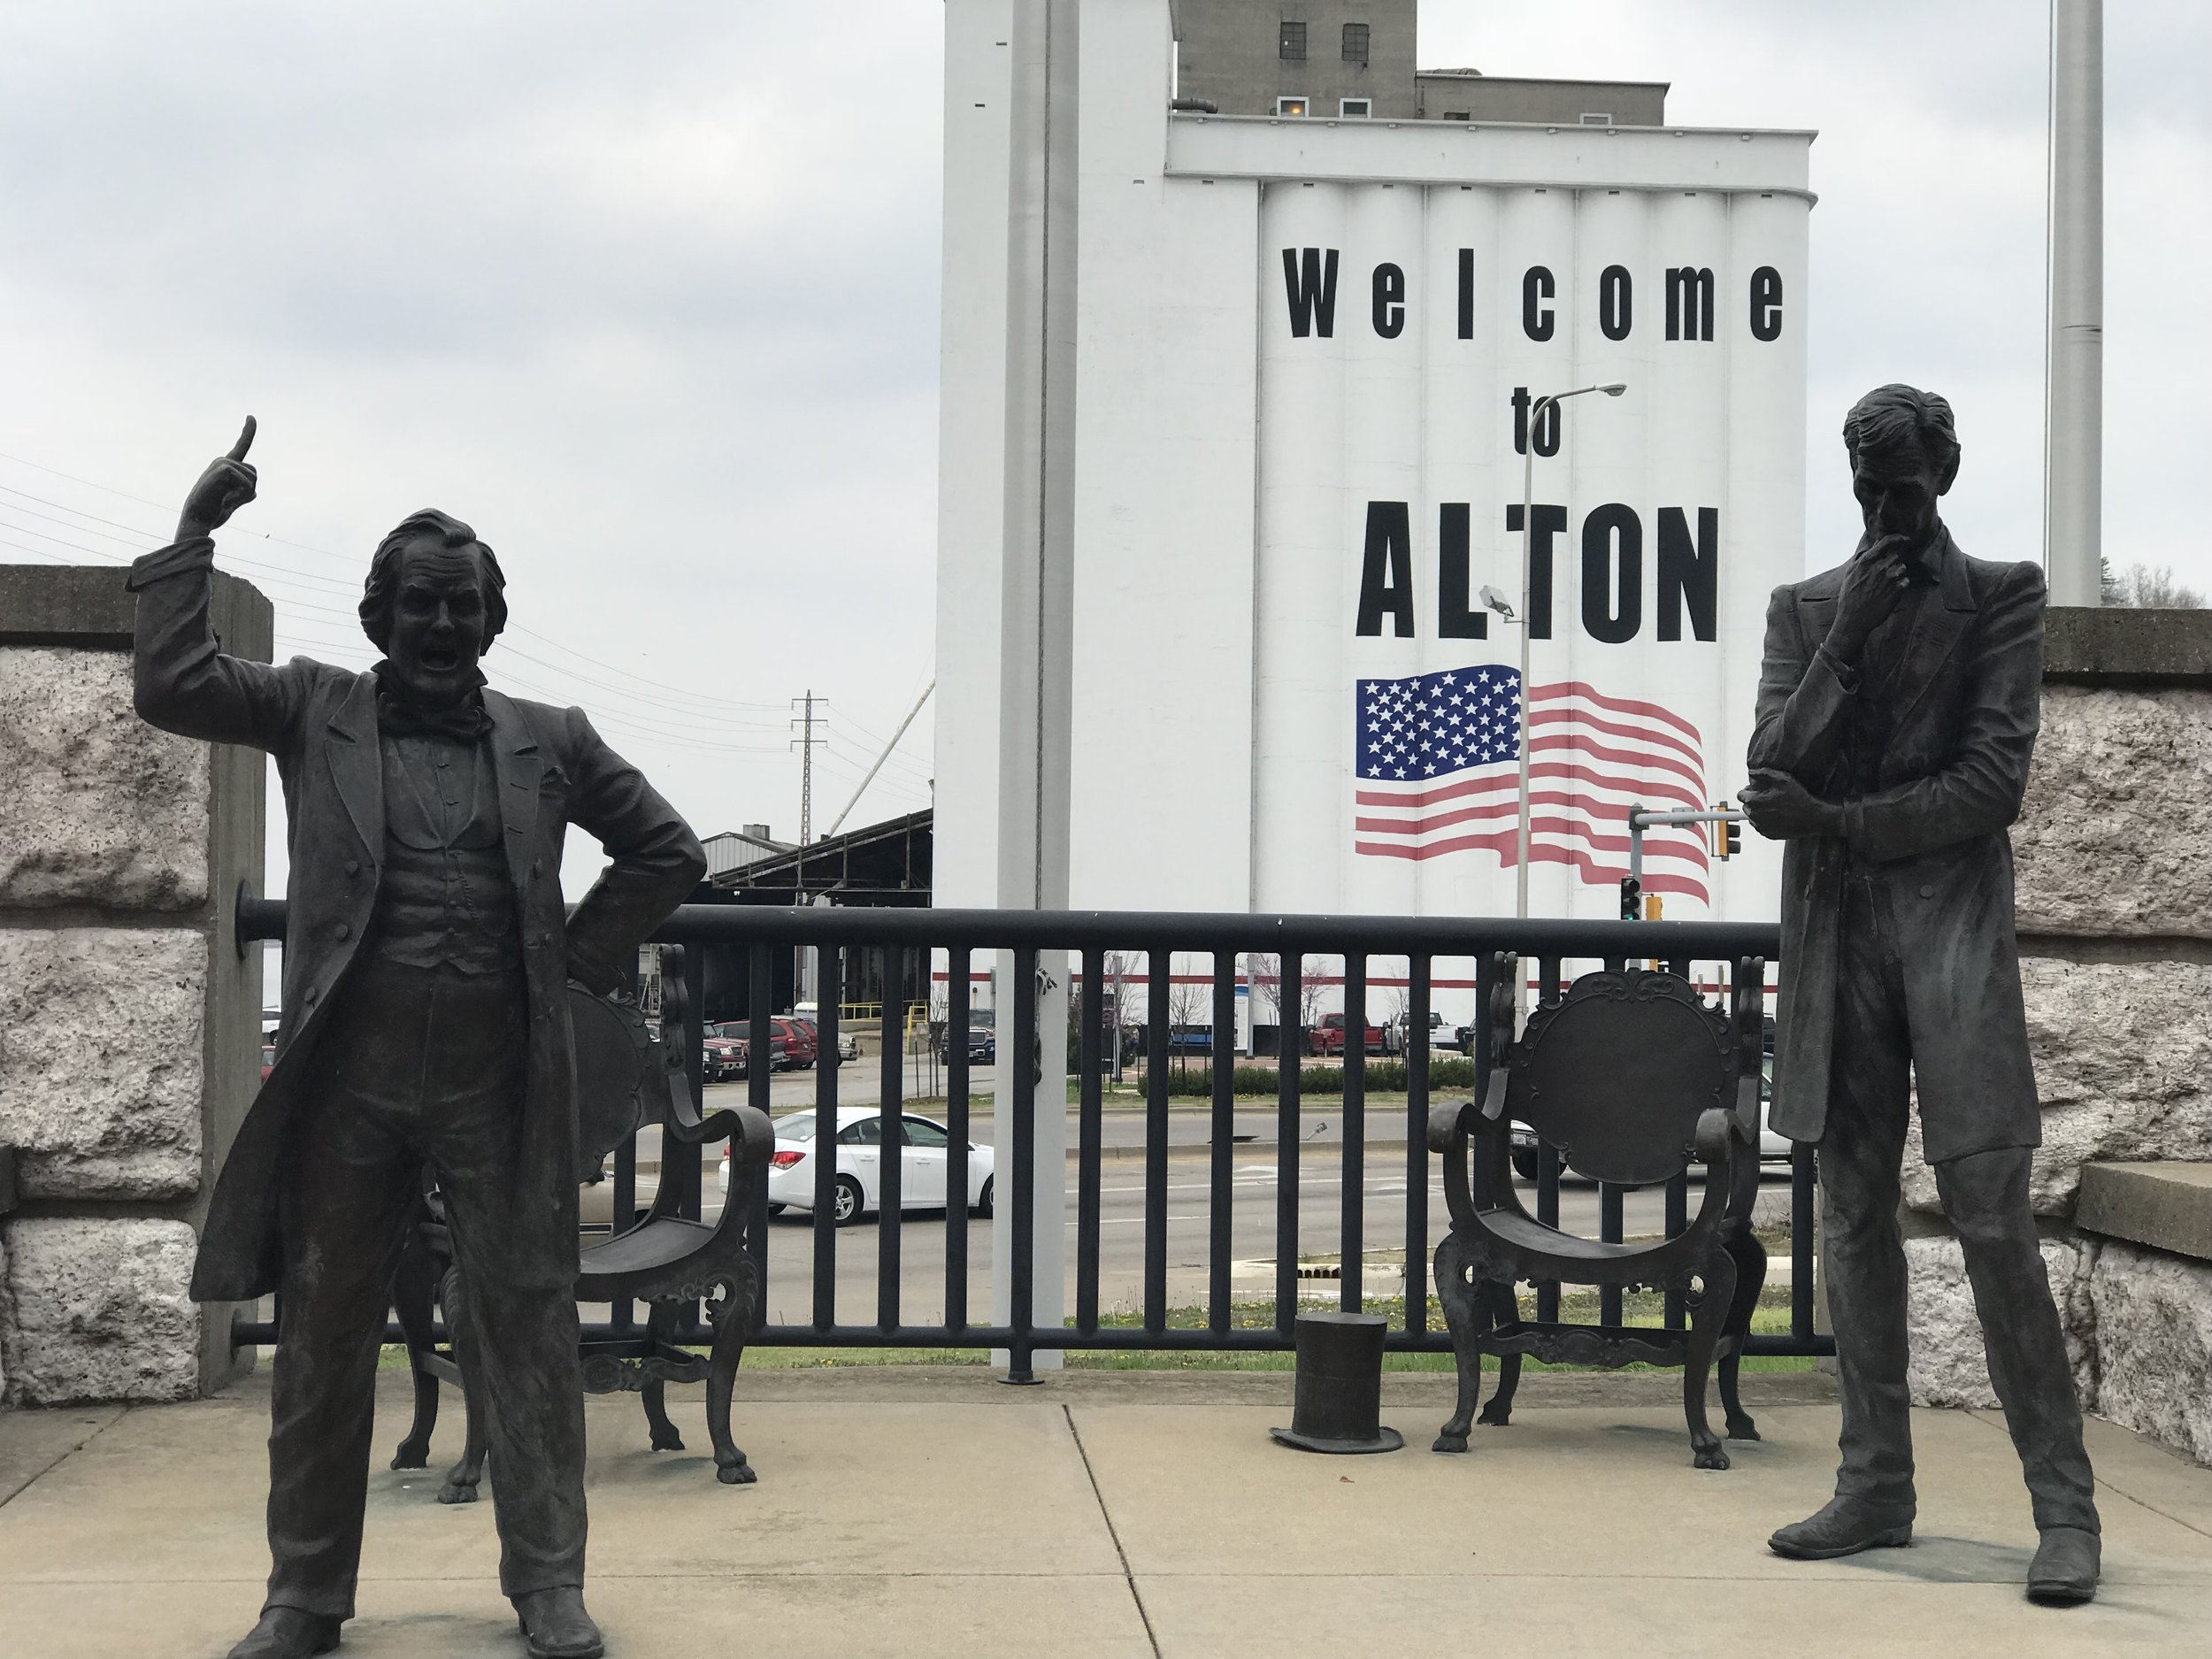 Statues at the site of the last of the 1858 debates between Stephen Douglas and Abraham Lincoln in Alton, Ill.